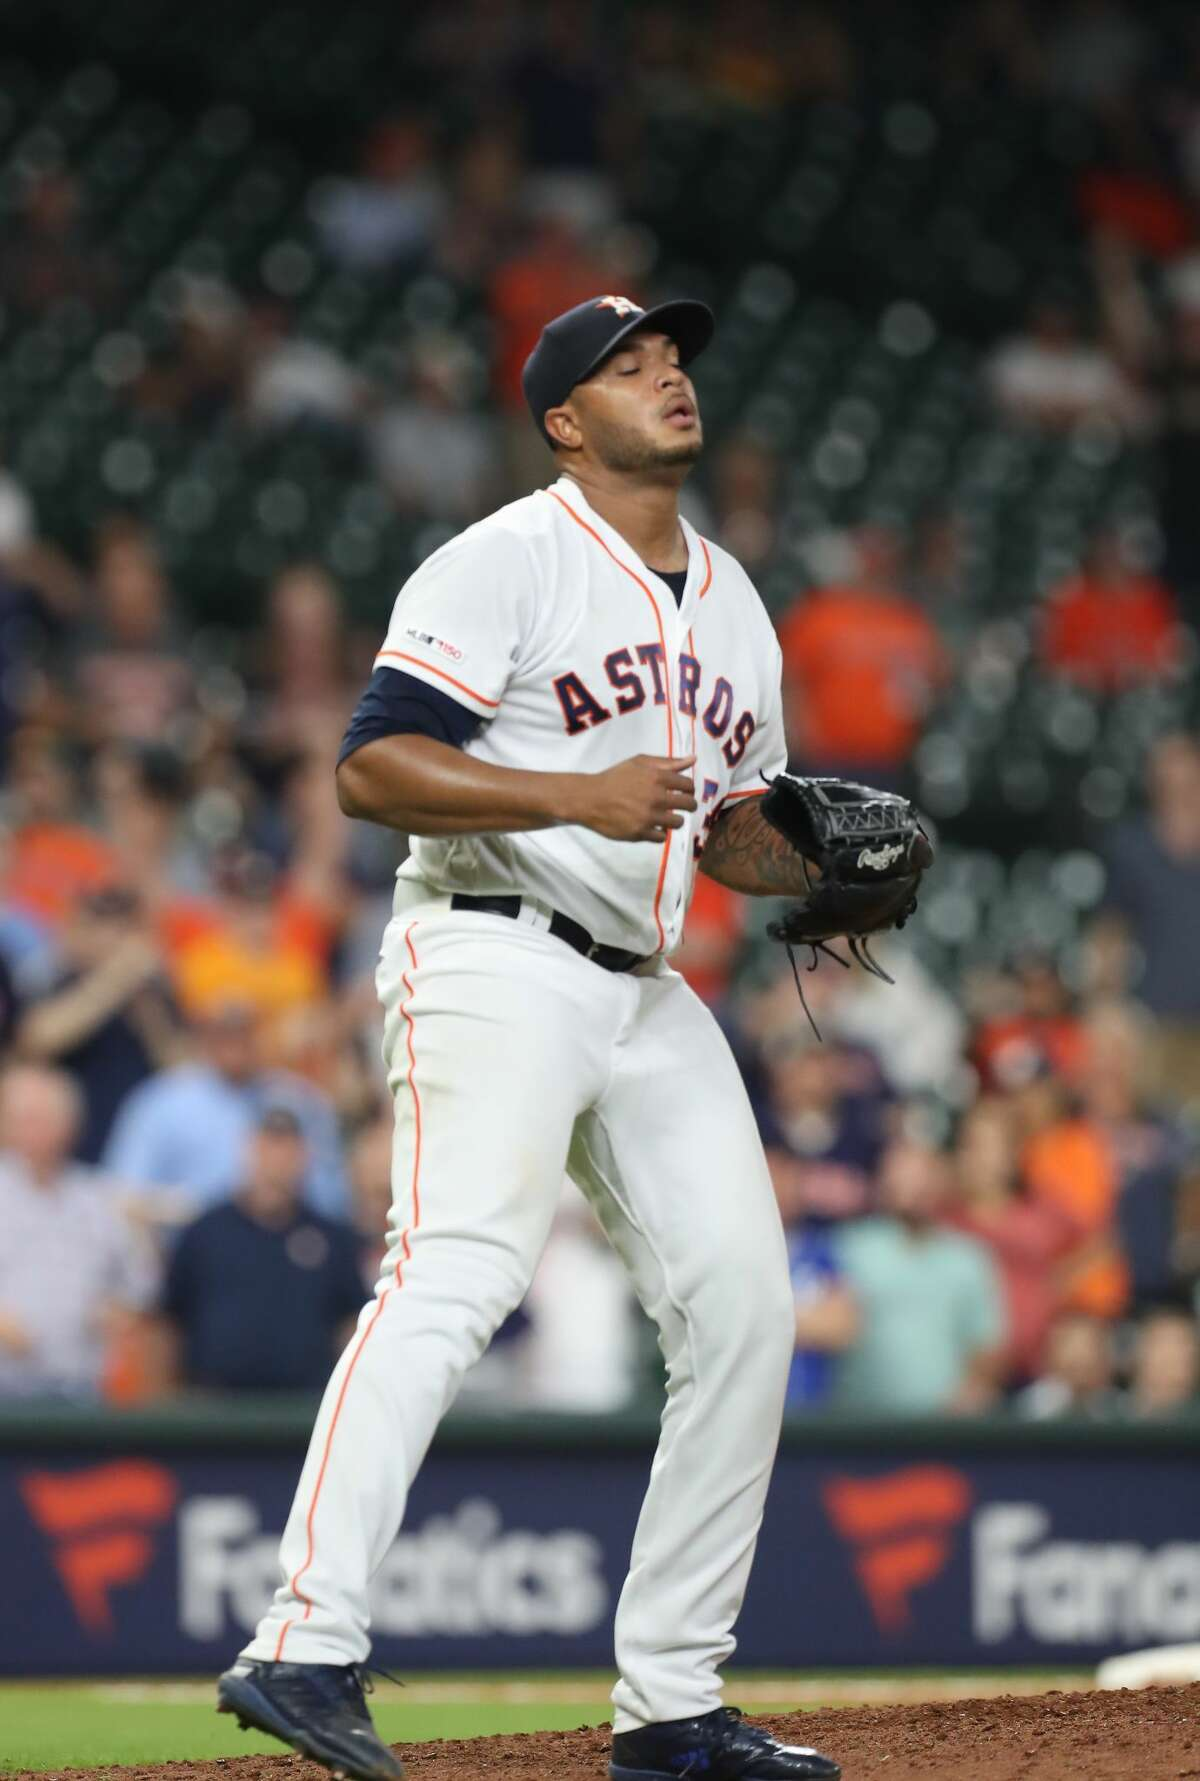 Houston Astros relief pitcher Josh James (39) reacts to making the final out during the an MLB baseball game at Minute Maid Park Wednesday, May 8, 2019, in Houston.